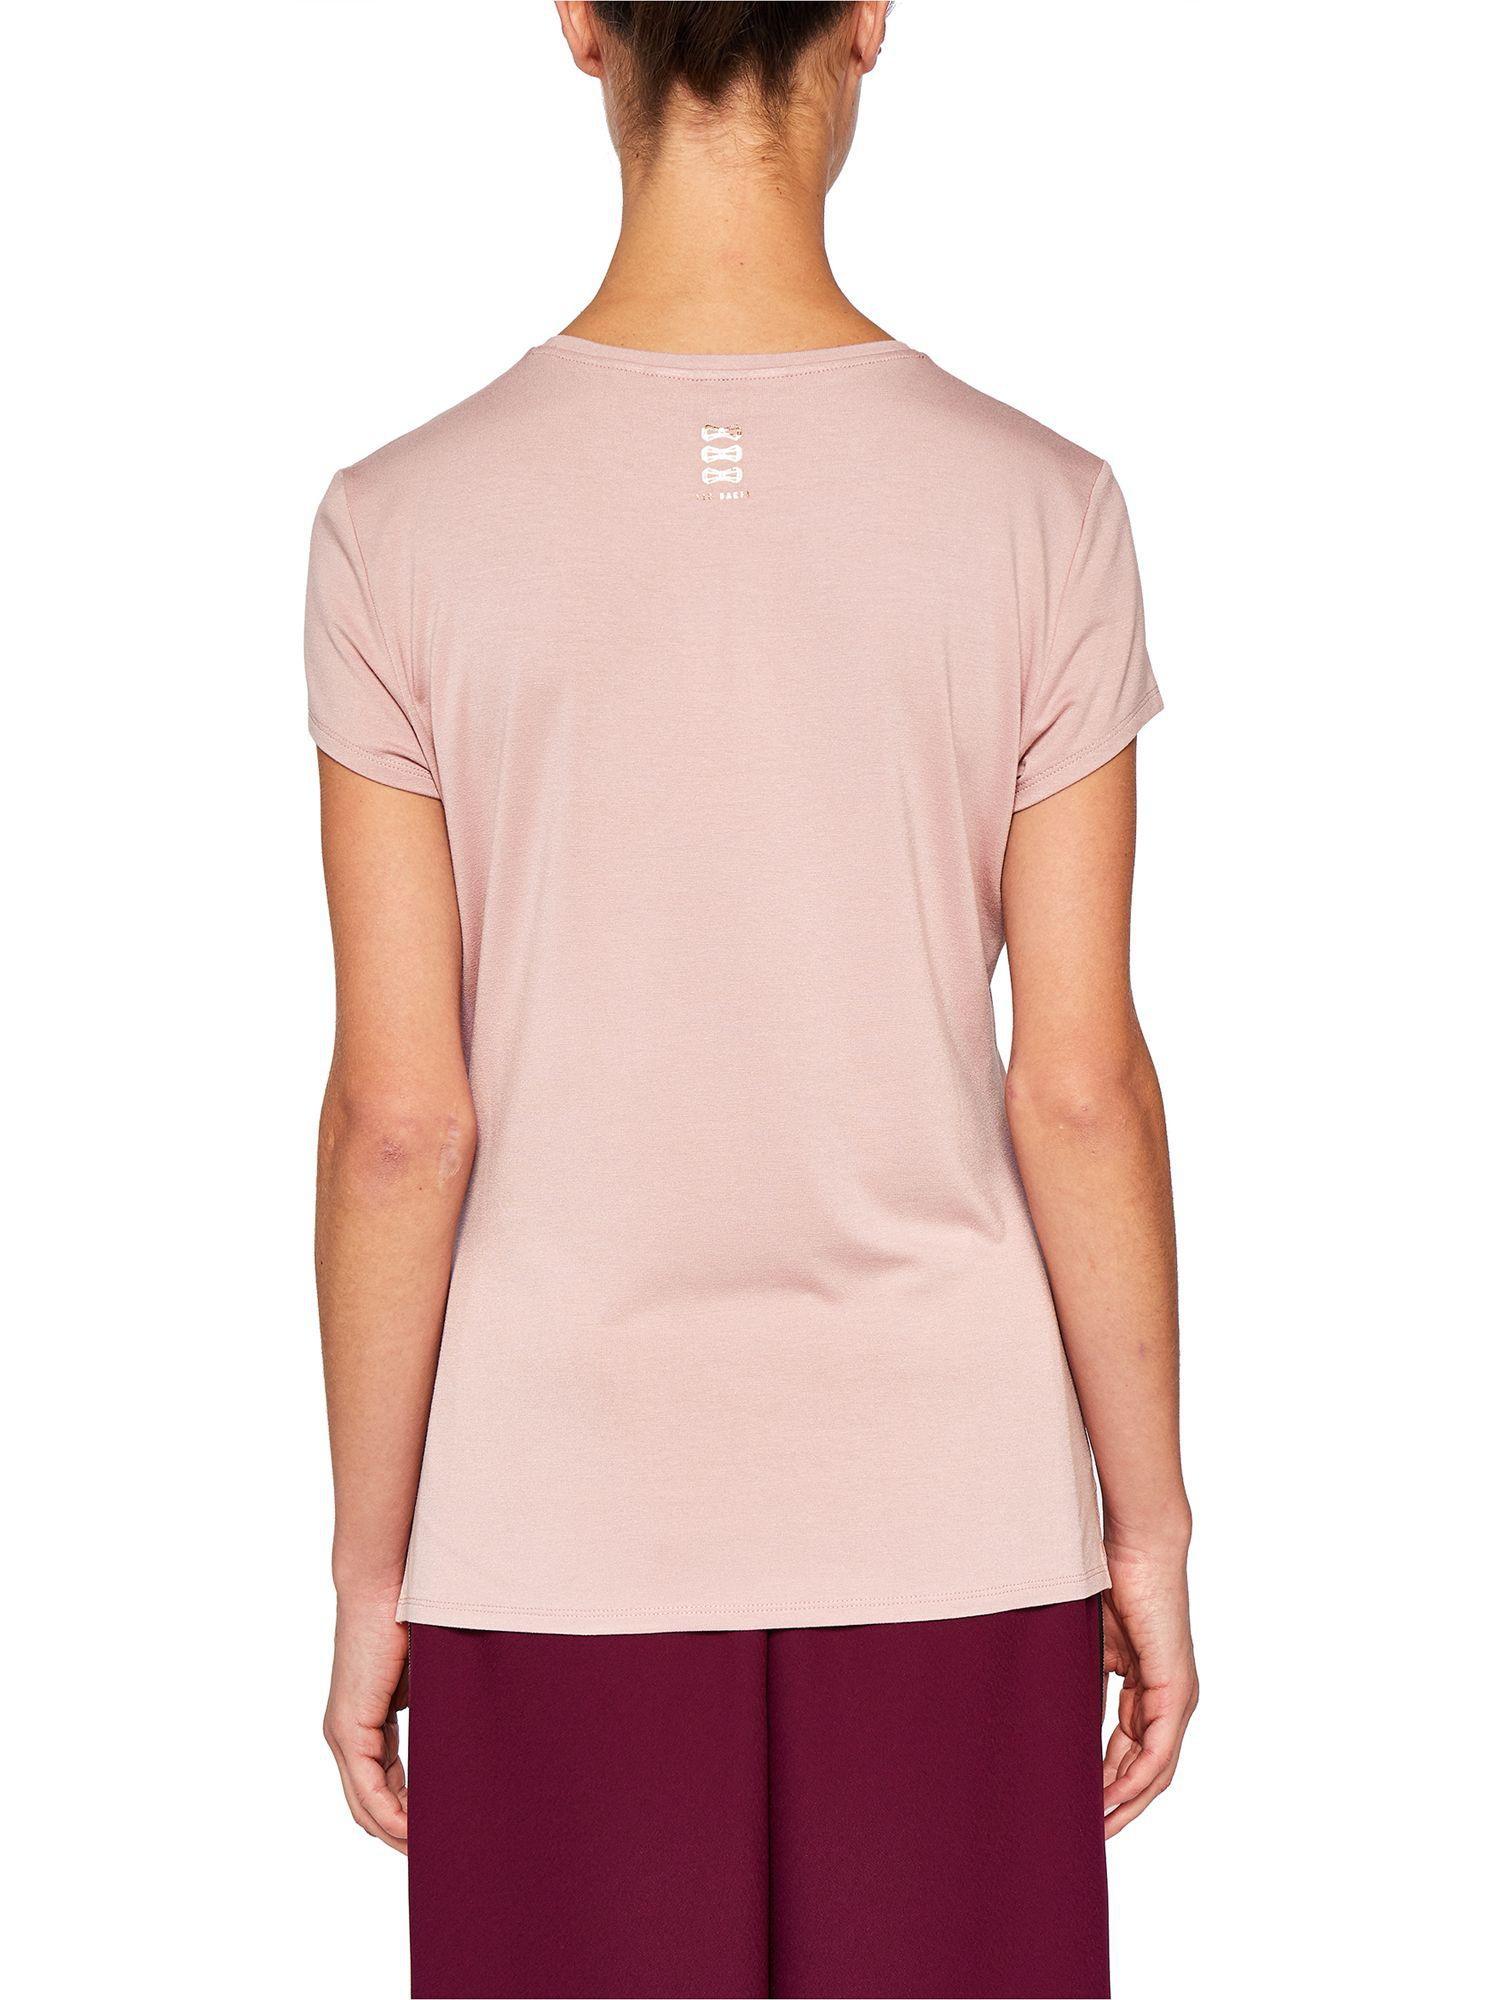 a70946a62 Ted Baker Ted Says Relax Lolyata Wake Me Up For Champagne T-shirt in Pink -  Lyst